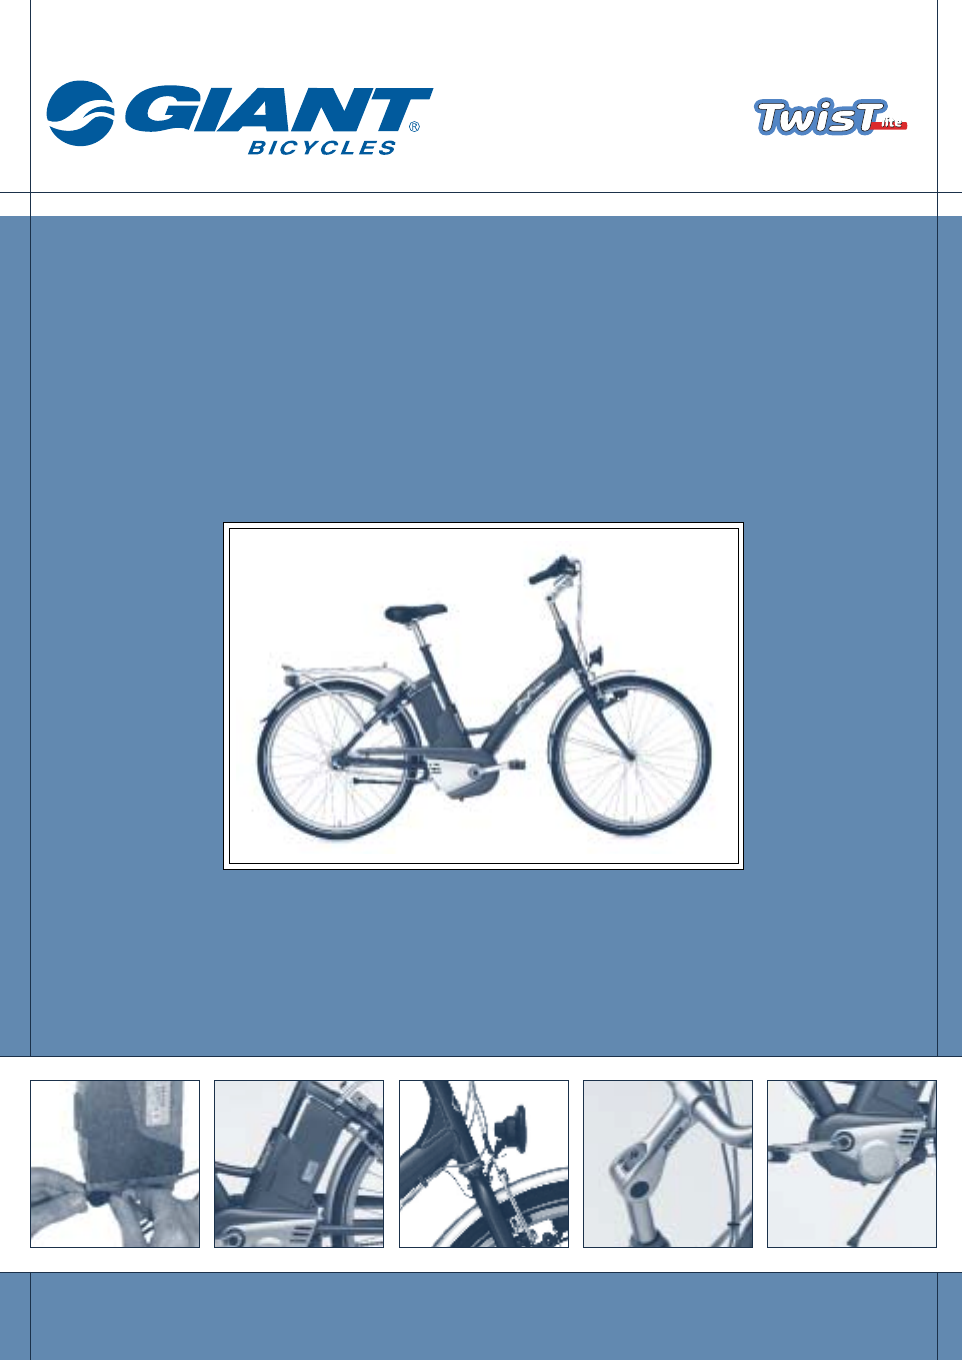 giant bicycle 2002 motorized bicycle user guide manualsonline com User Manual giant bicycle owner manual version 10.0